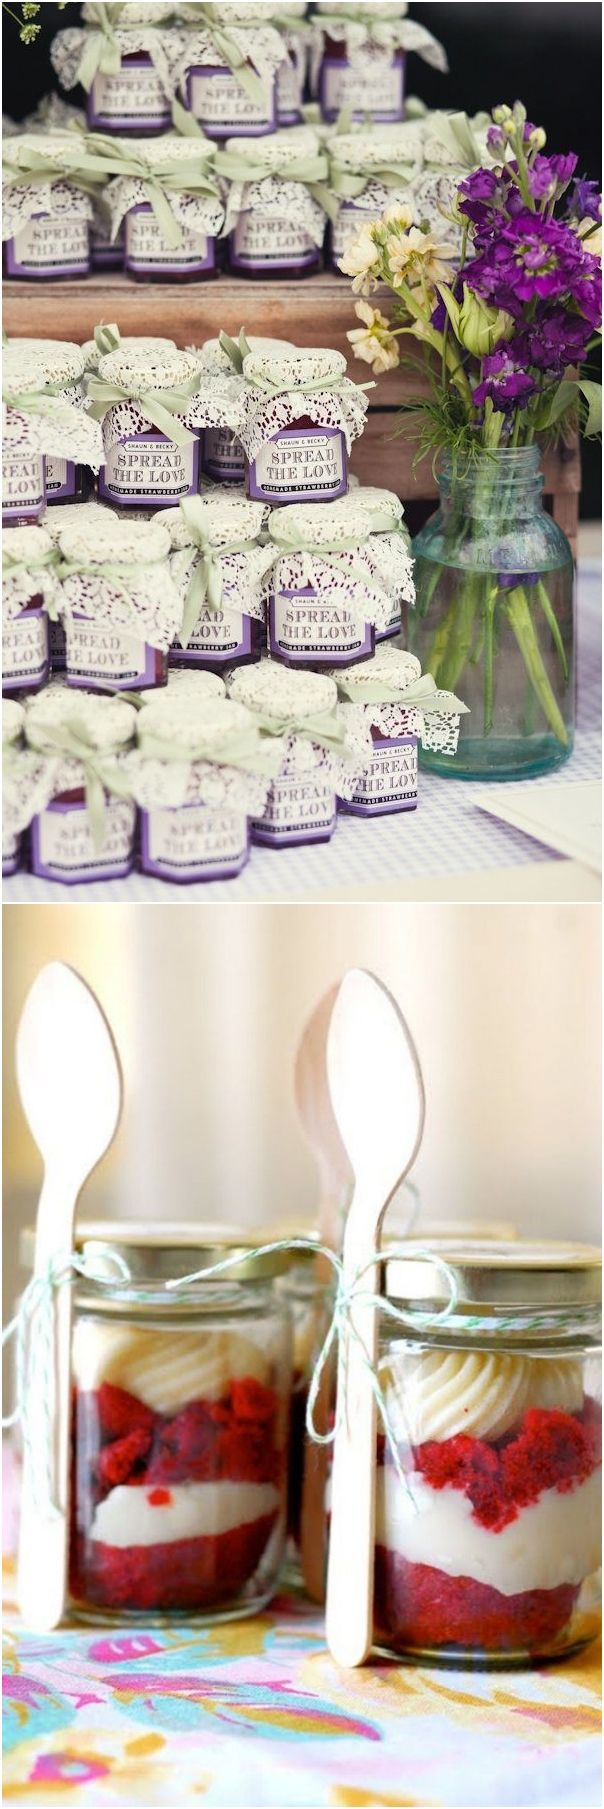 438 best Wedding Favors images on Pinterest | Appetizer dips, Baby ...